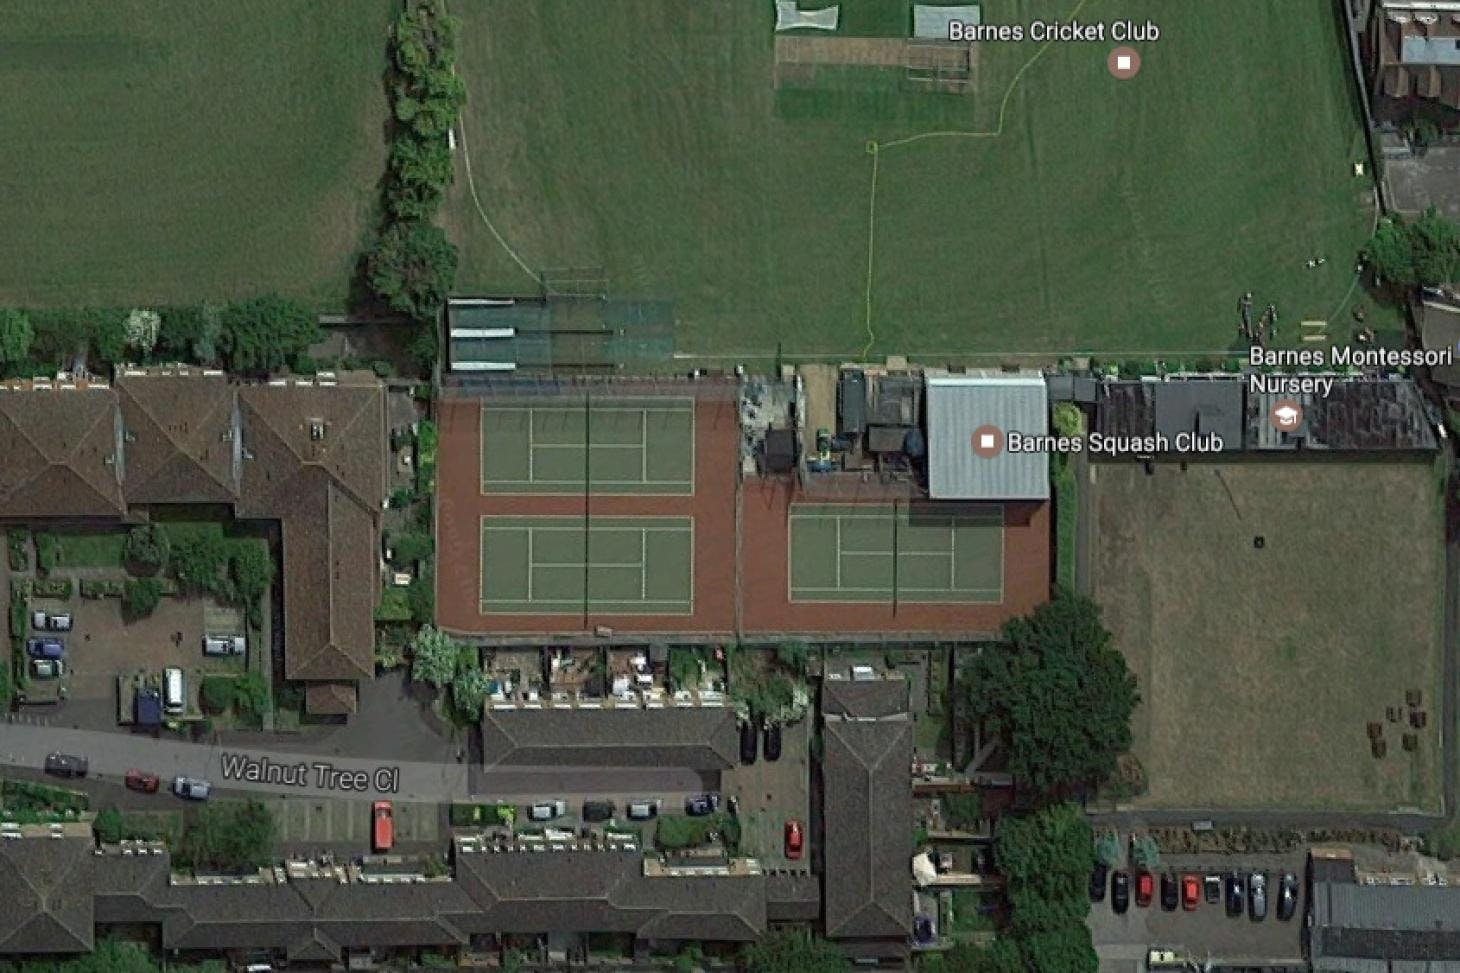 Barnes Sports Club Outdoor | Hard (macadam) tennis court